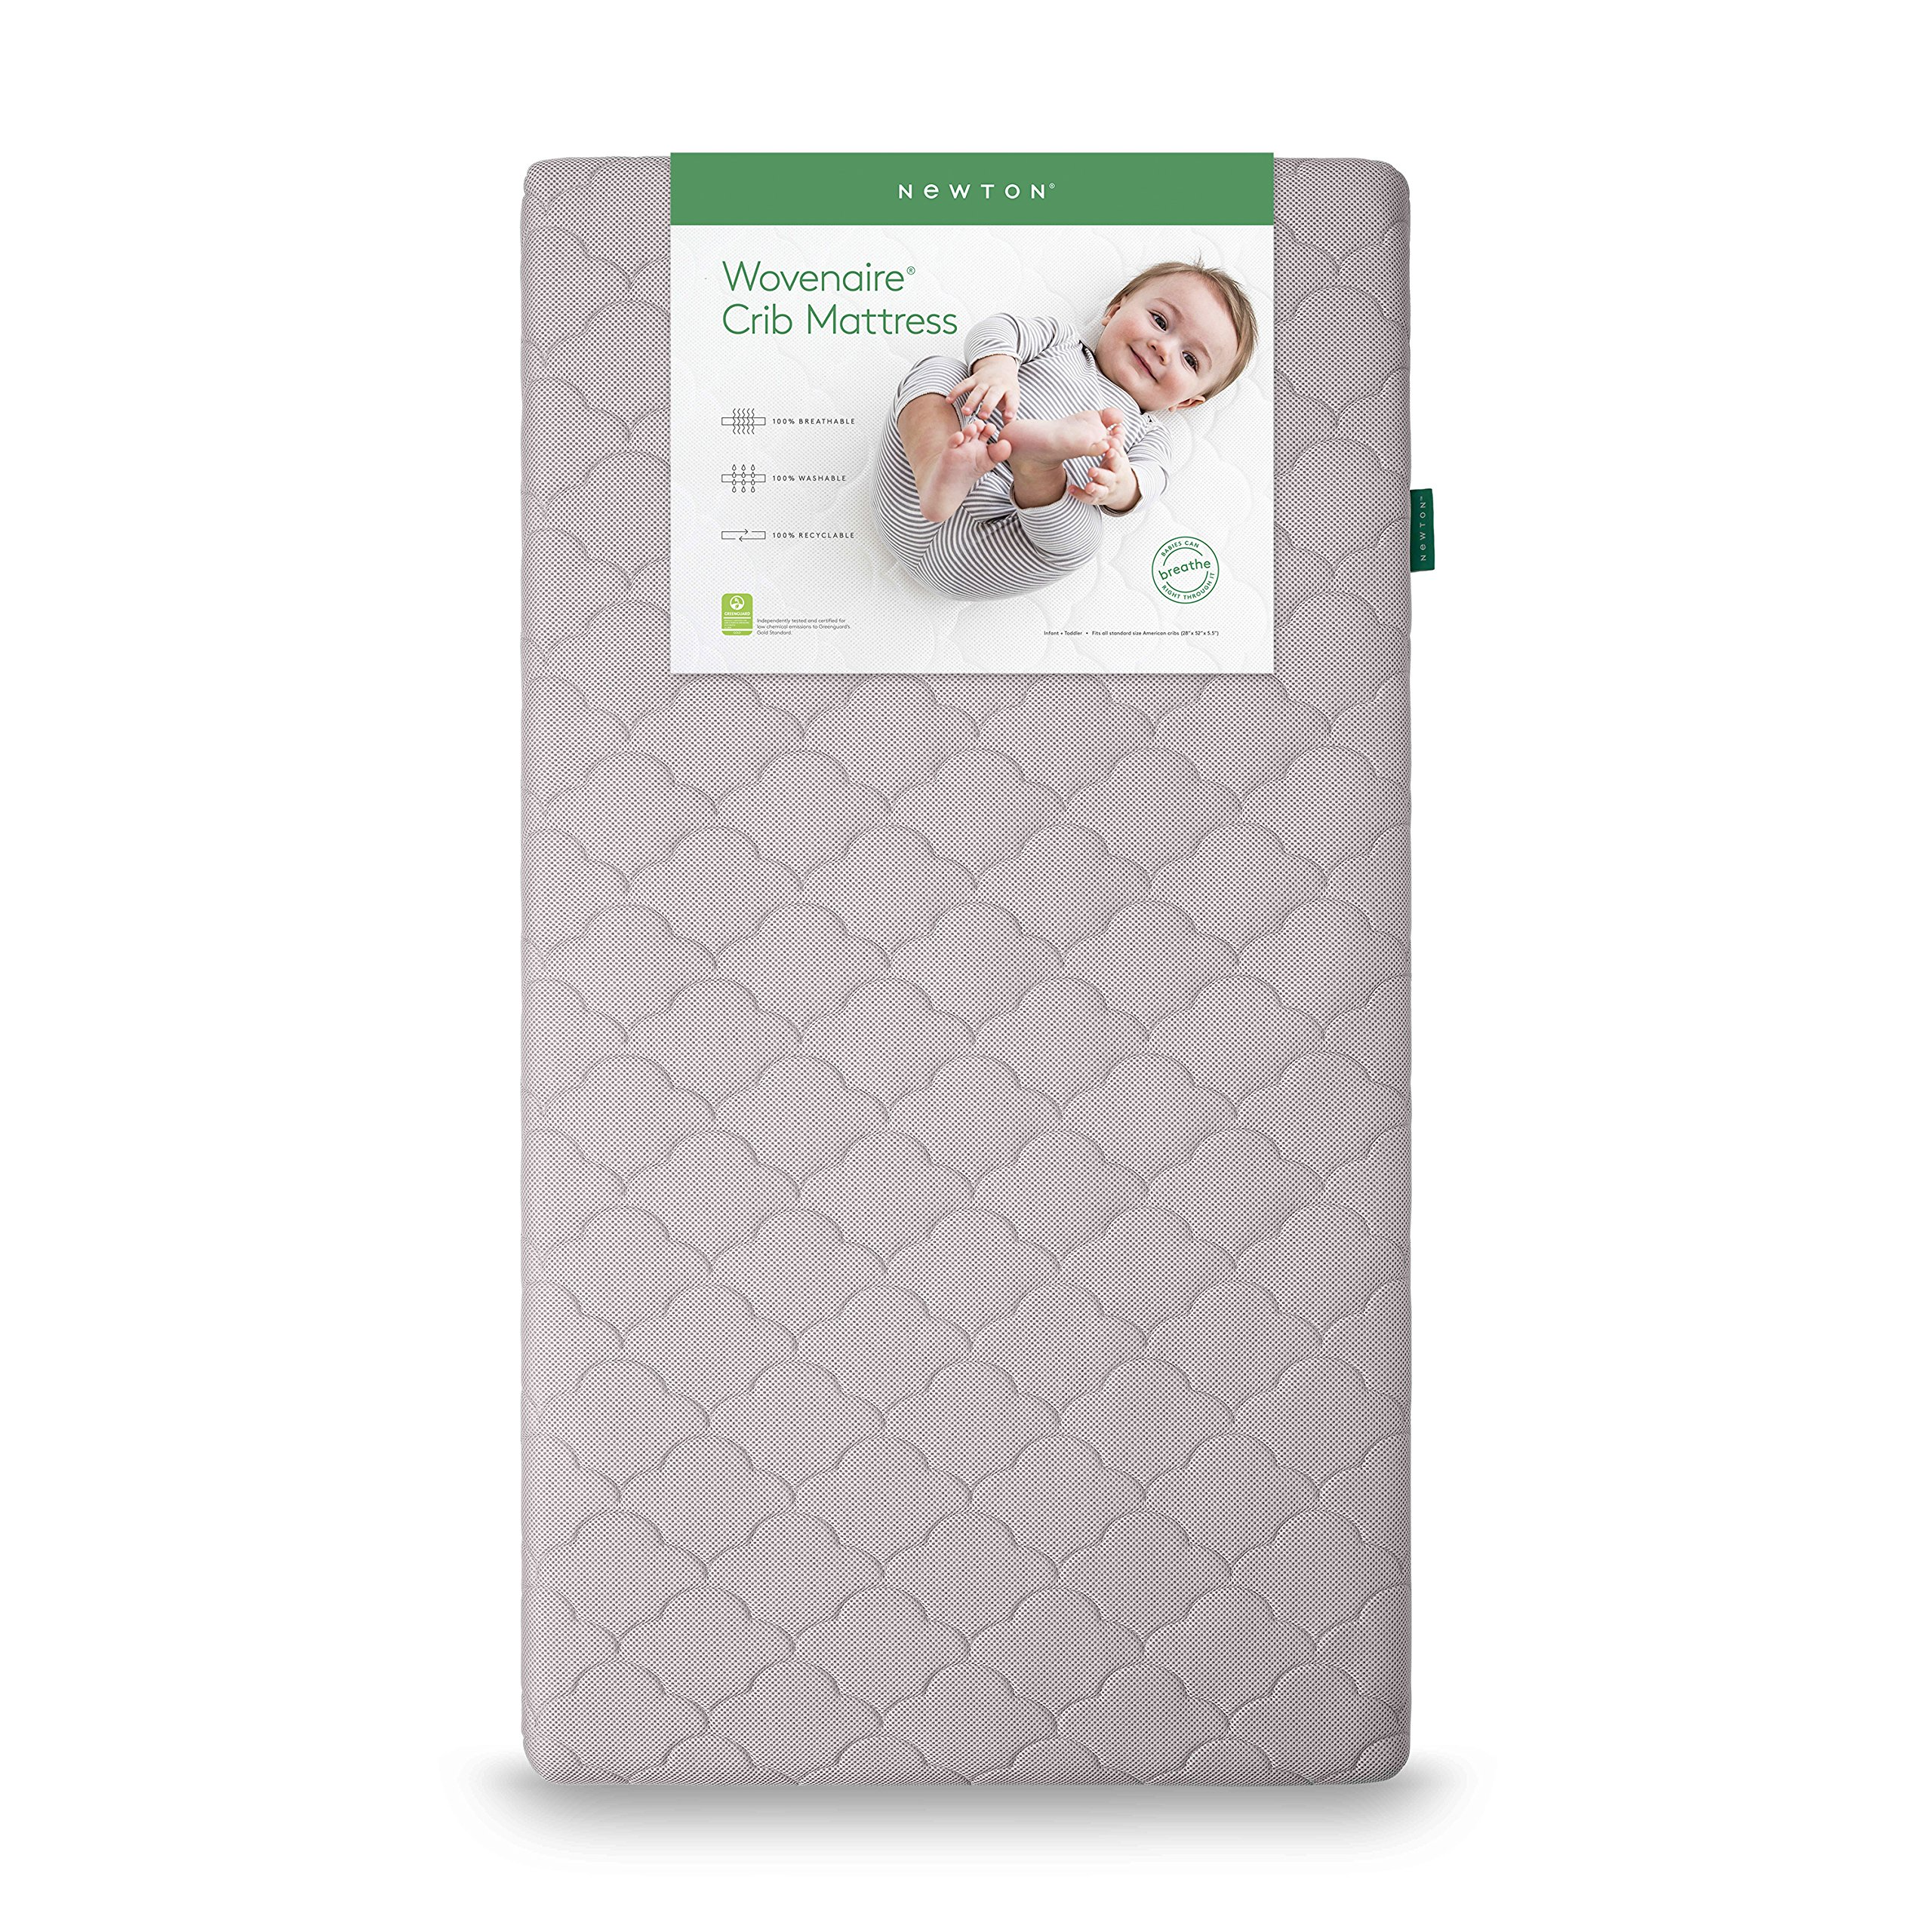 Newton Wovenaire Crib Mattress: 100% Breathable and Washable. Beyond Organic- the safest, cleanest & most comfortable sleep for your baby, Moonlight Grey